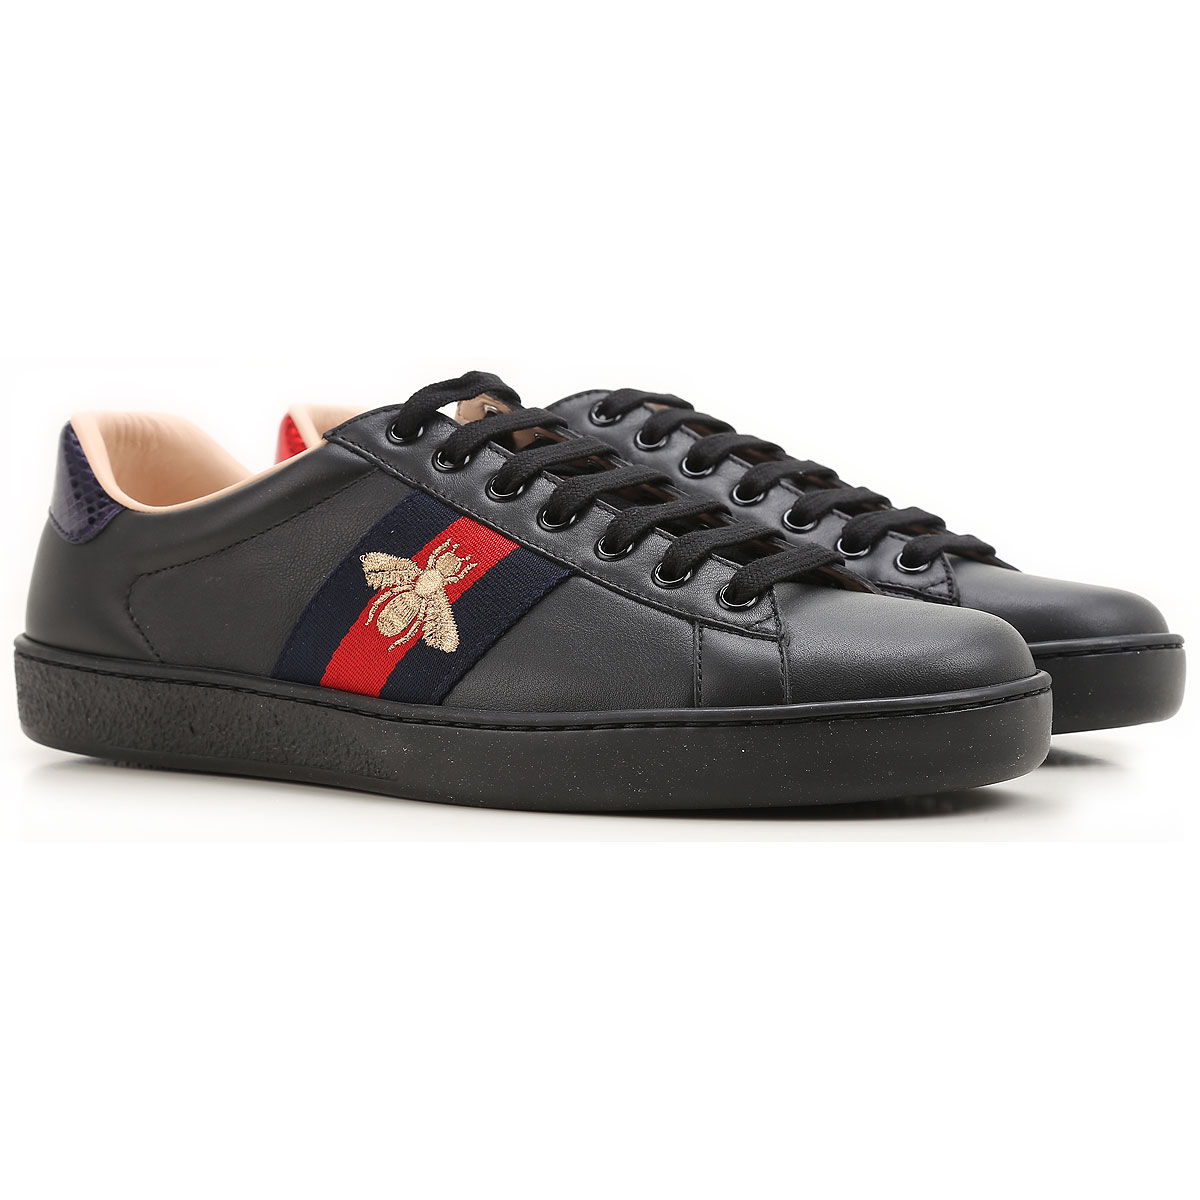 Gucci Shoes For Kids Girls